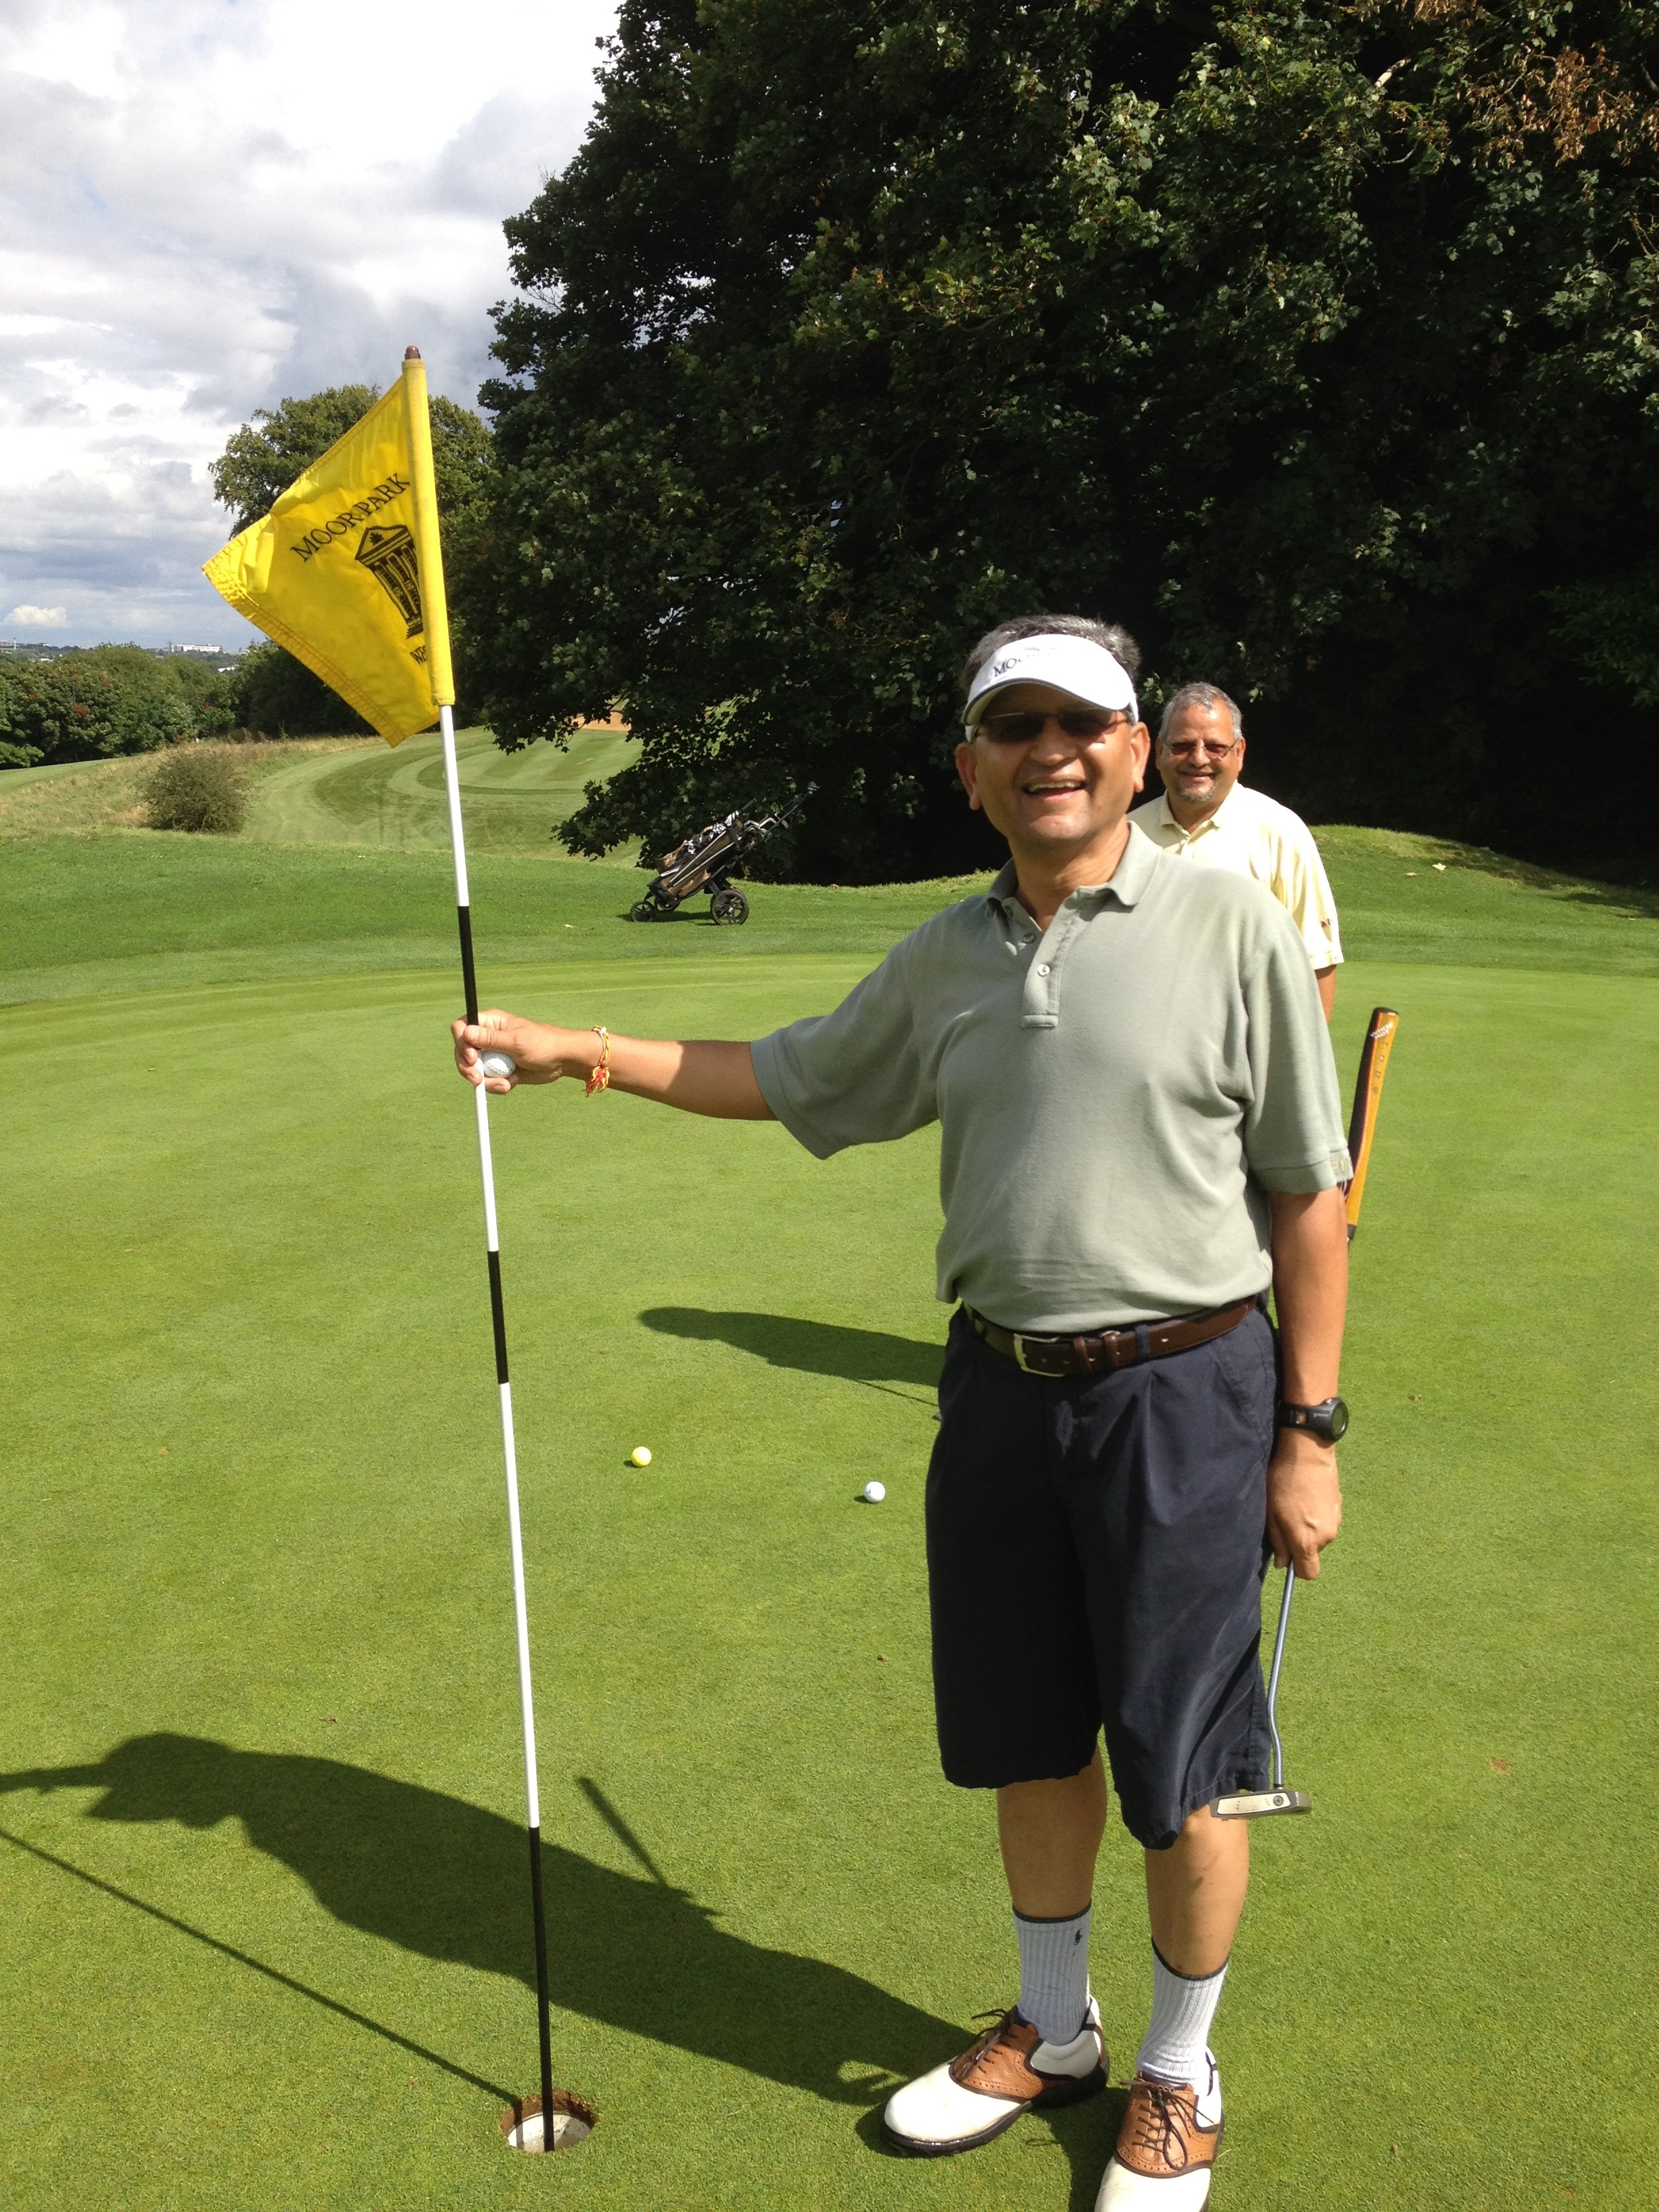 Playing Golf - Hole in one